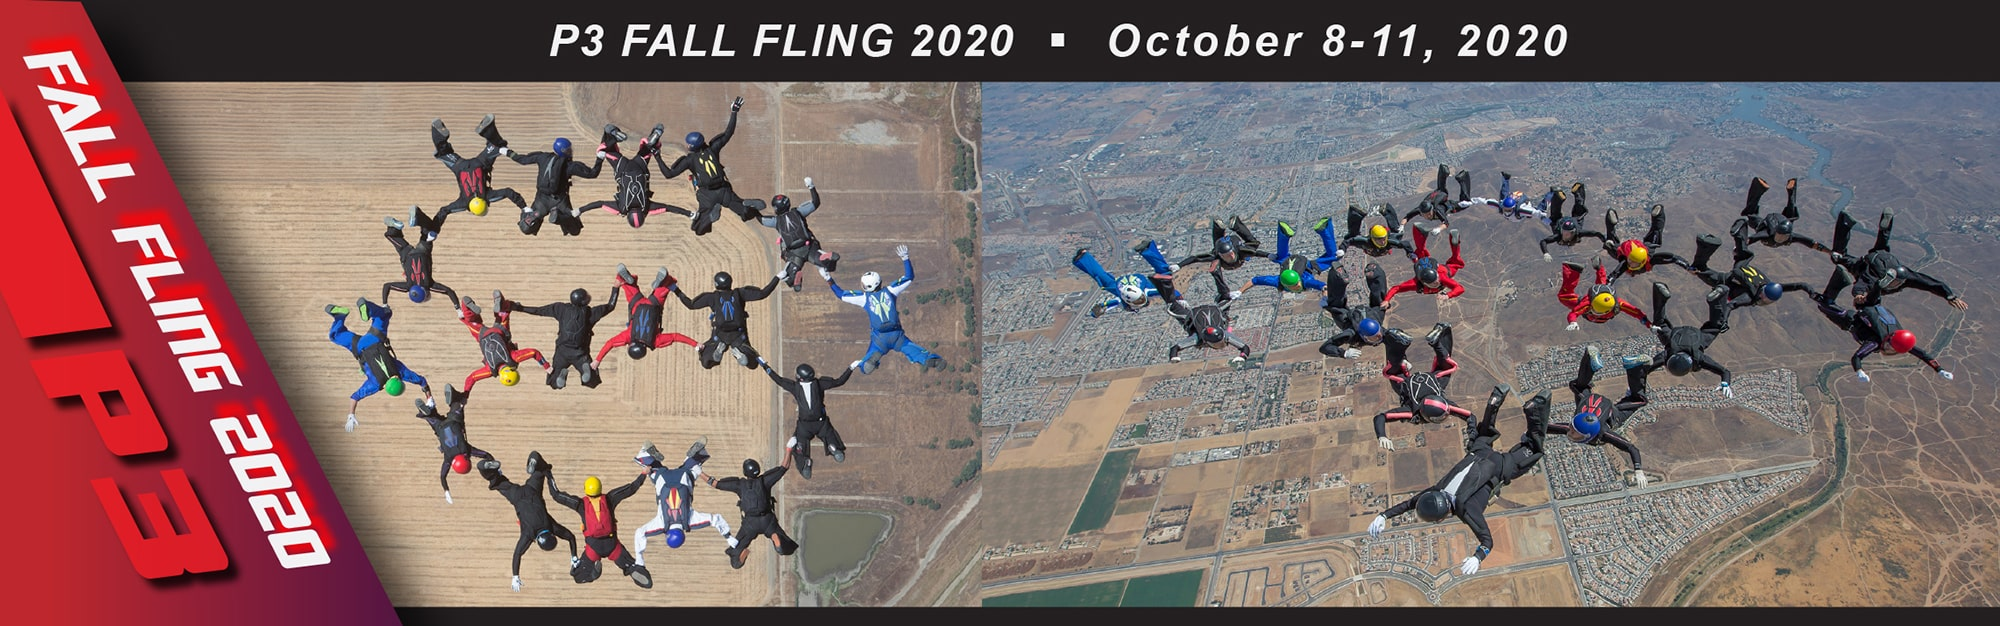 P3 Fall Fling (Oct 2020)